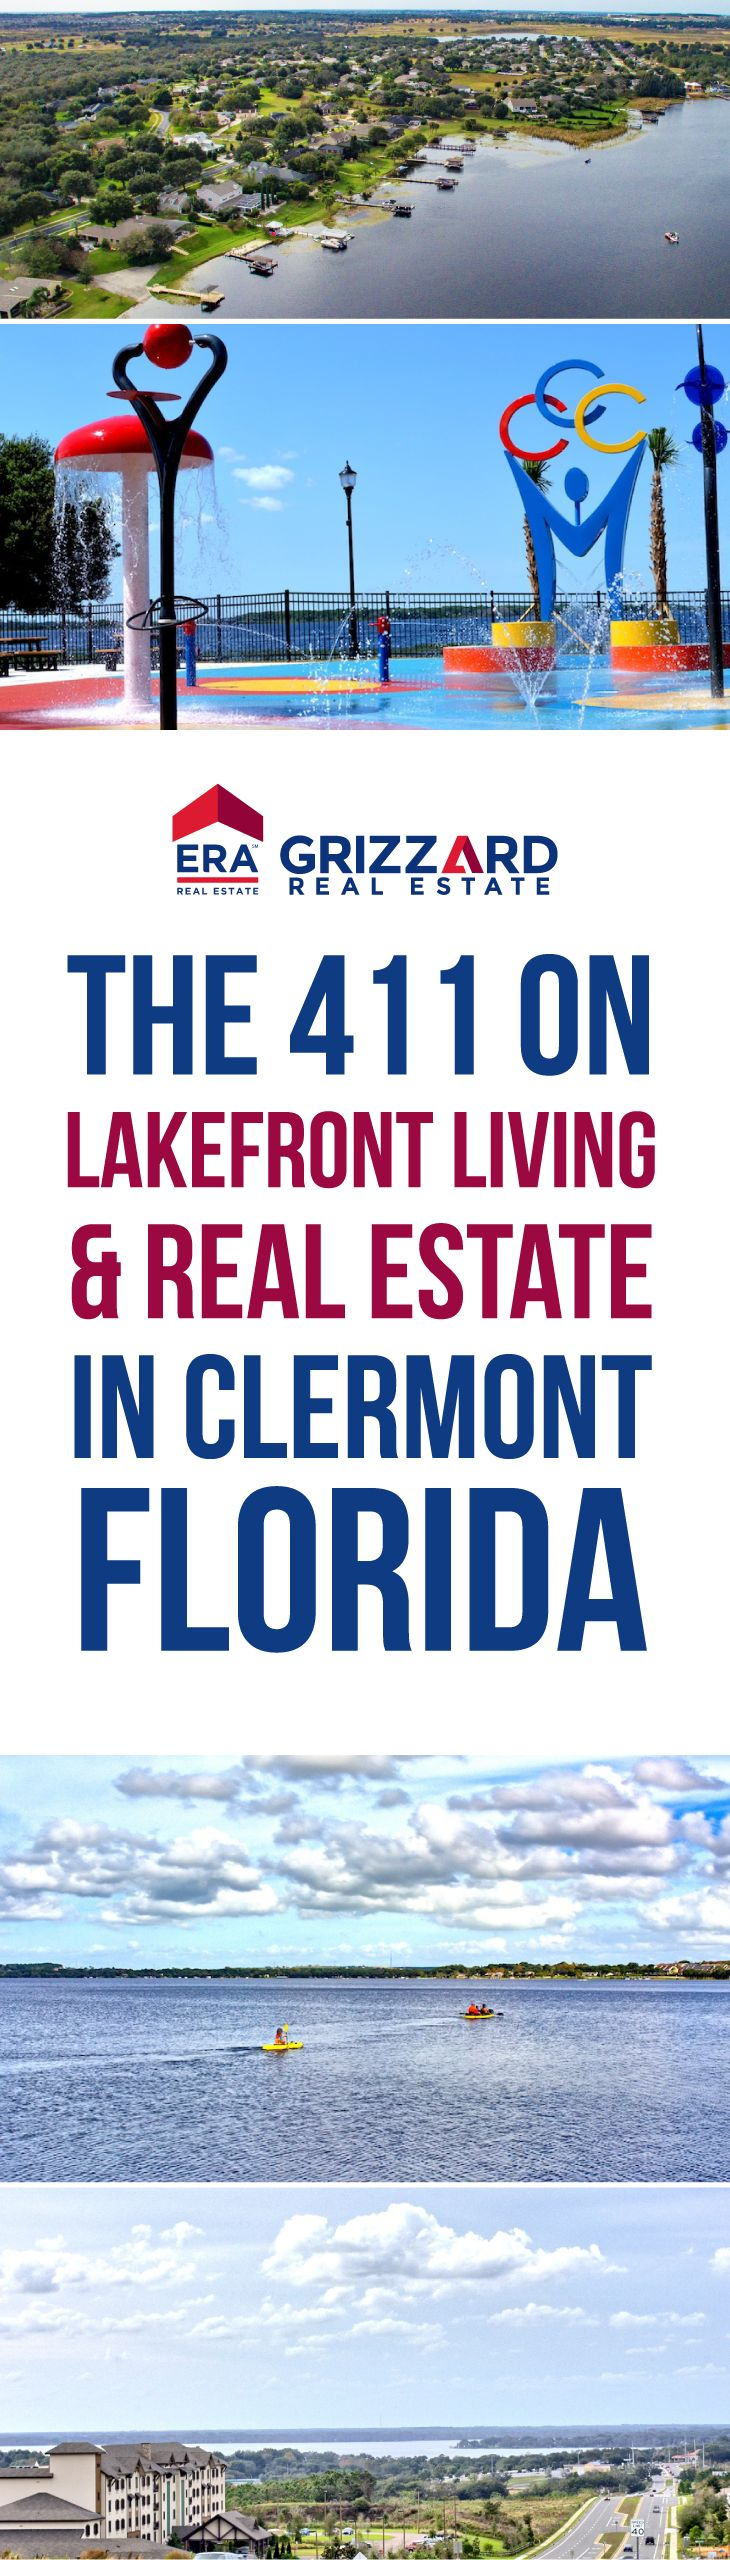 Learn all about one of the top Real Estate lifestyles in Clermont, Florida - lakefront! Browse the hottest lakefront homes for sale in Clermont, to recreation, and the best places to live the lifestyle!